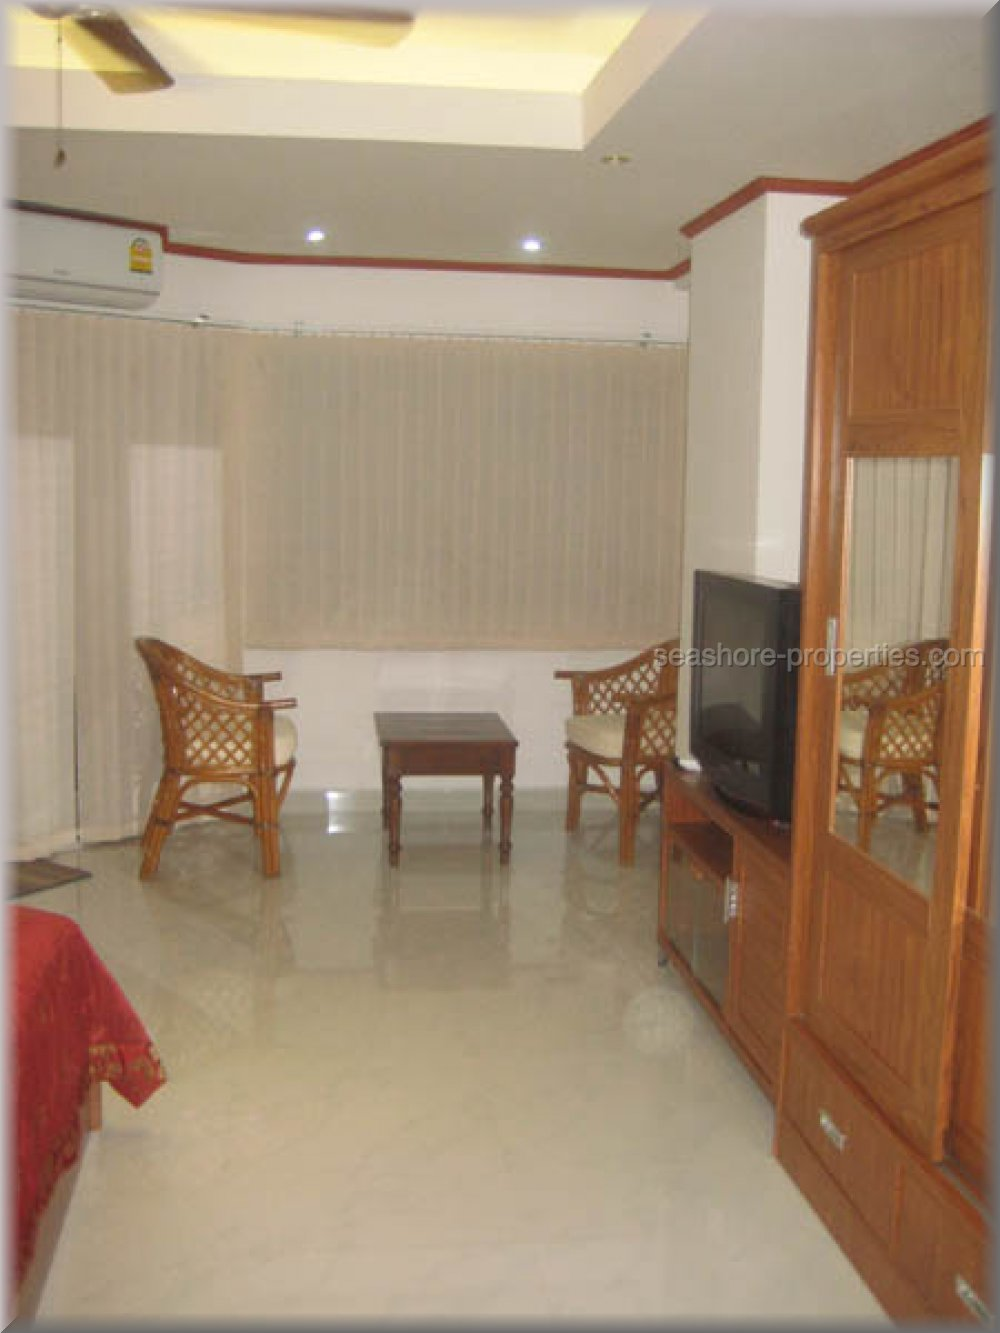 majestic condominium studio for sale in jomtien for sale in Jomtien Pattaya